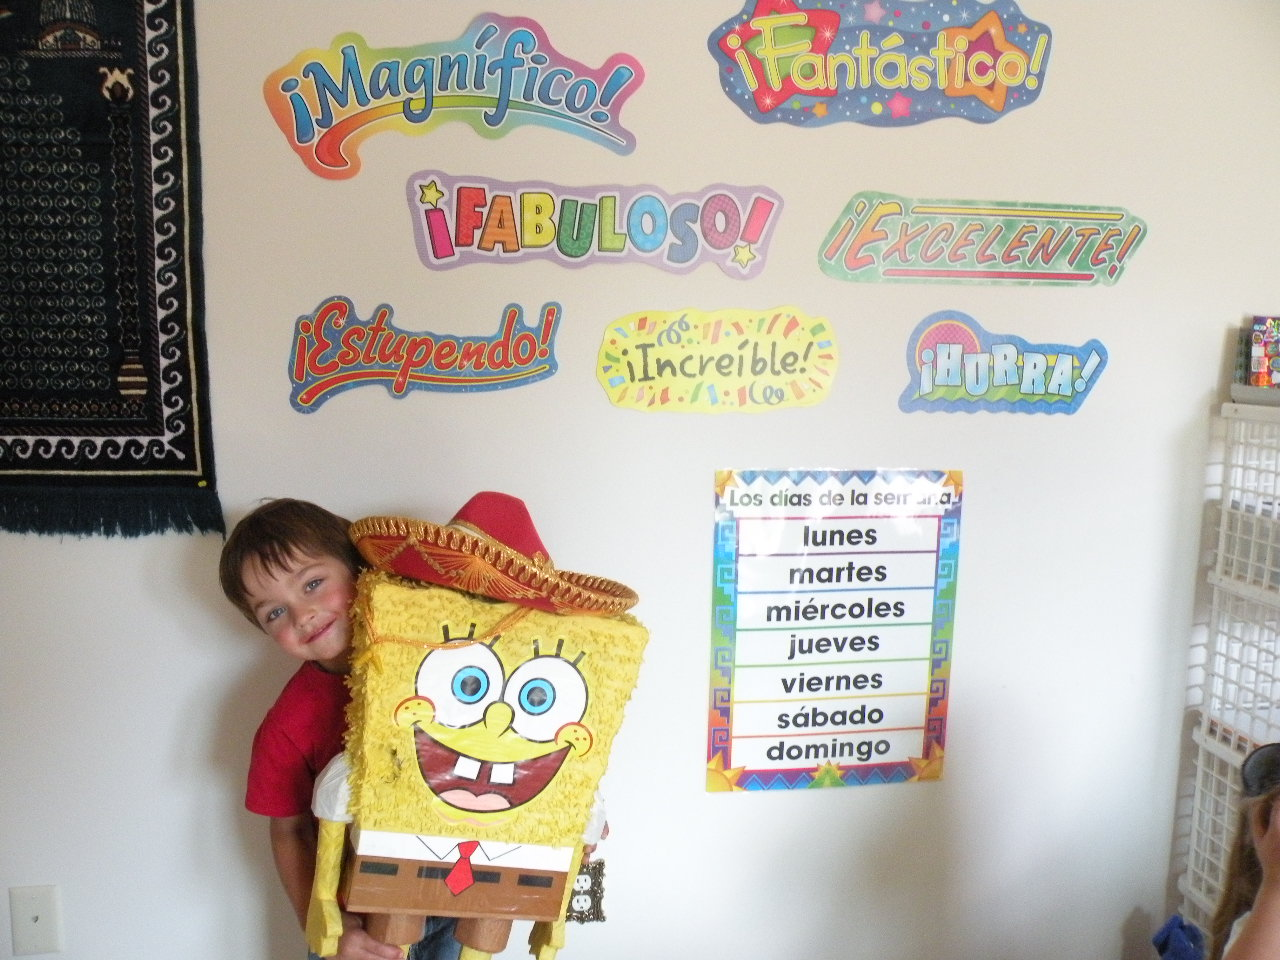 Victor with SpongeBob